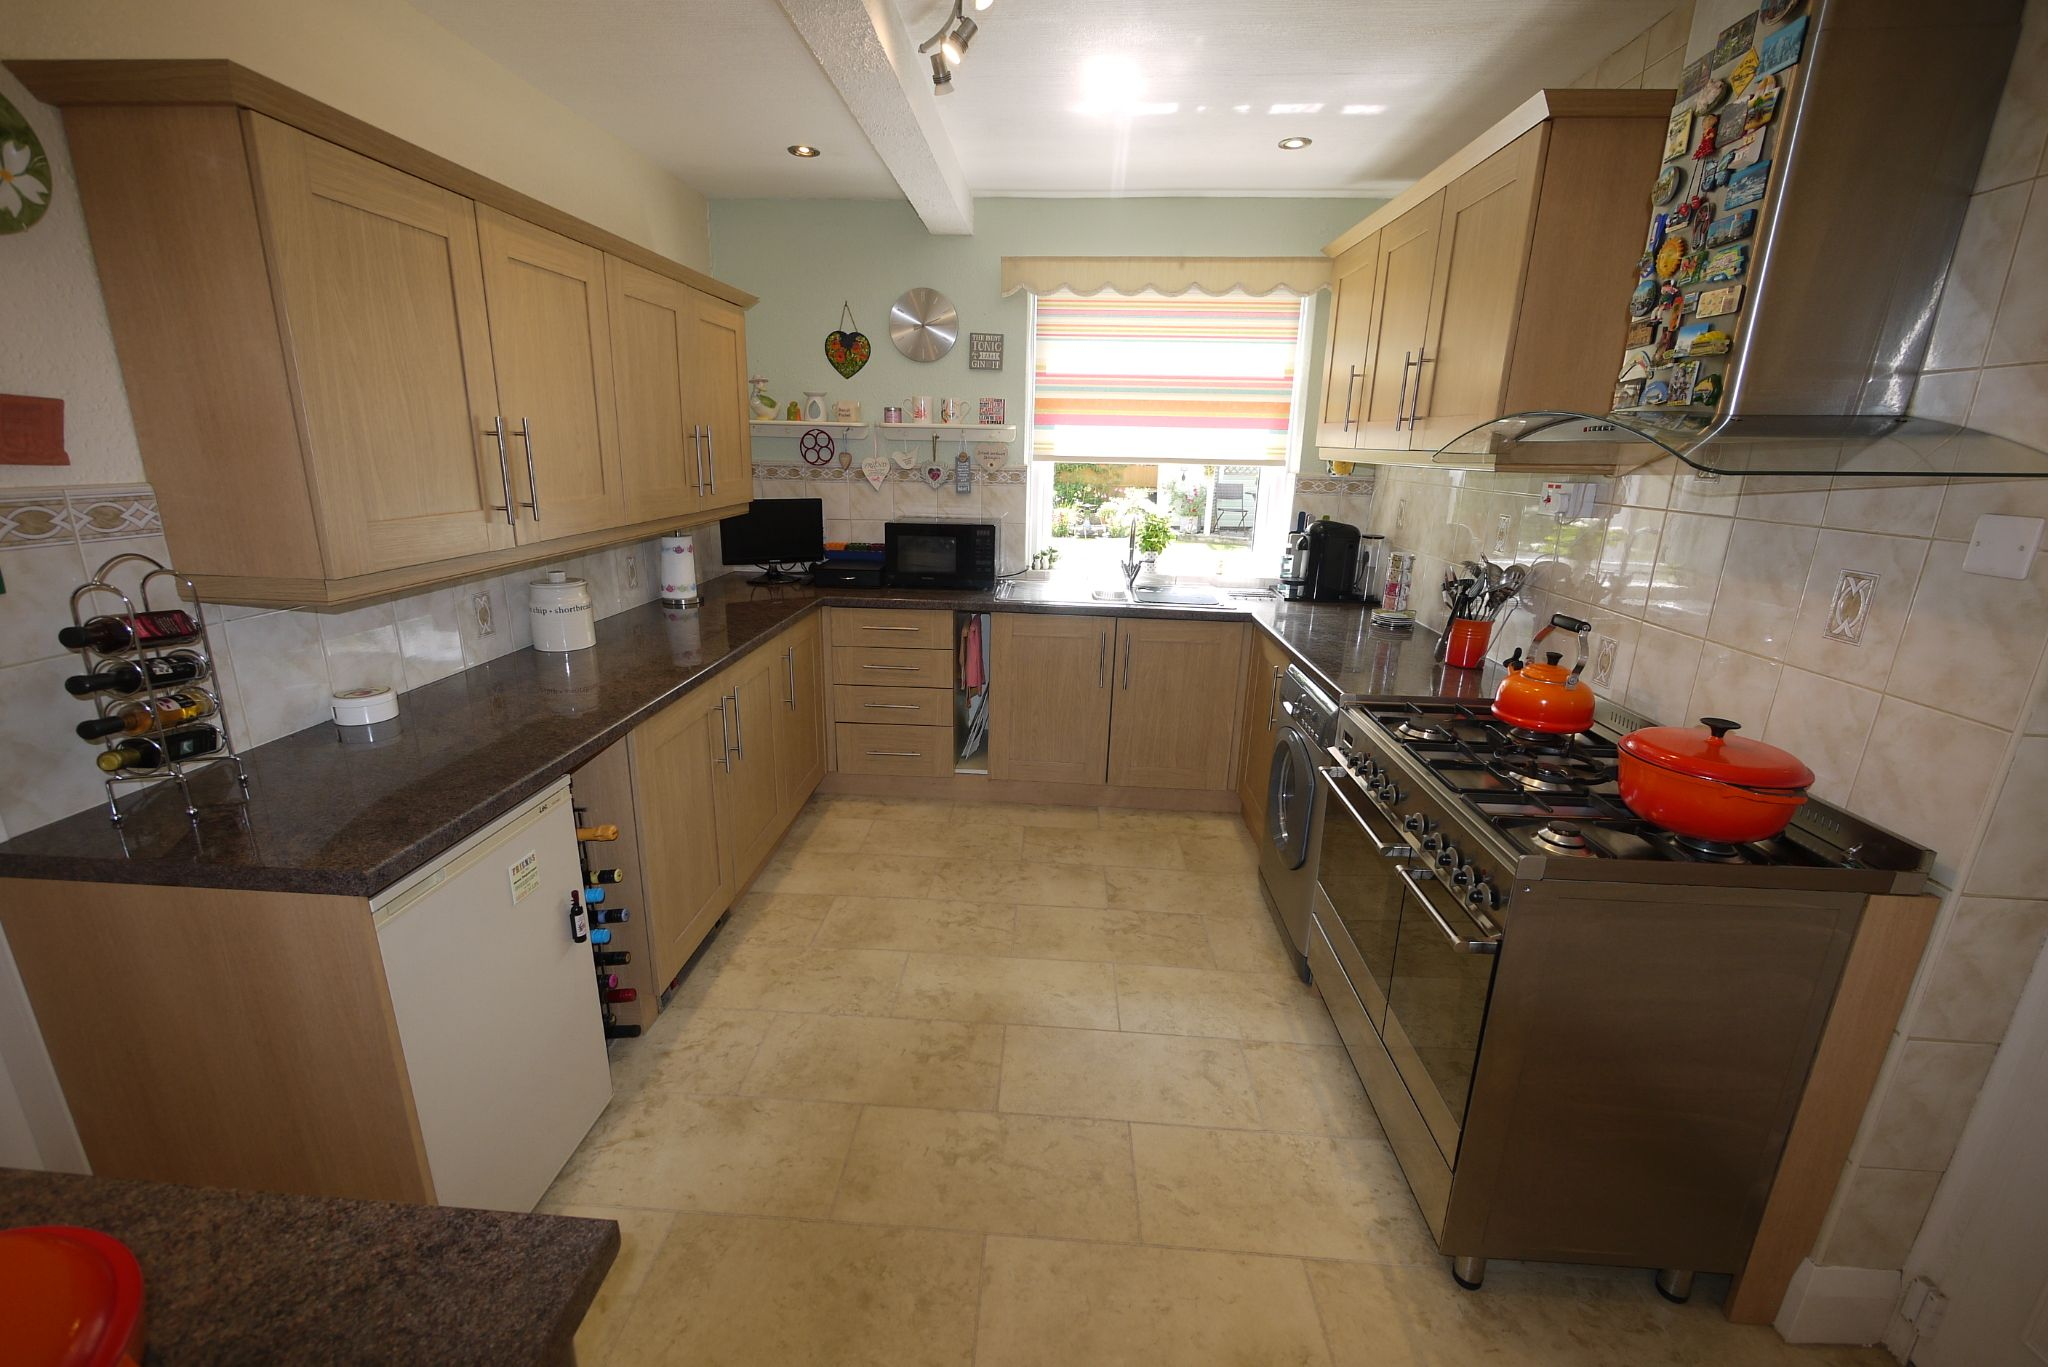 4 bedroom semi-detached house SSTC in Brighouse - Photograph 3.